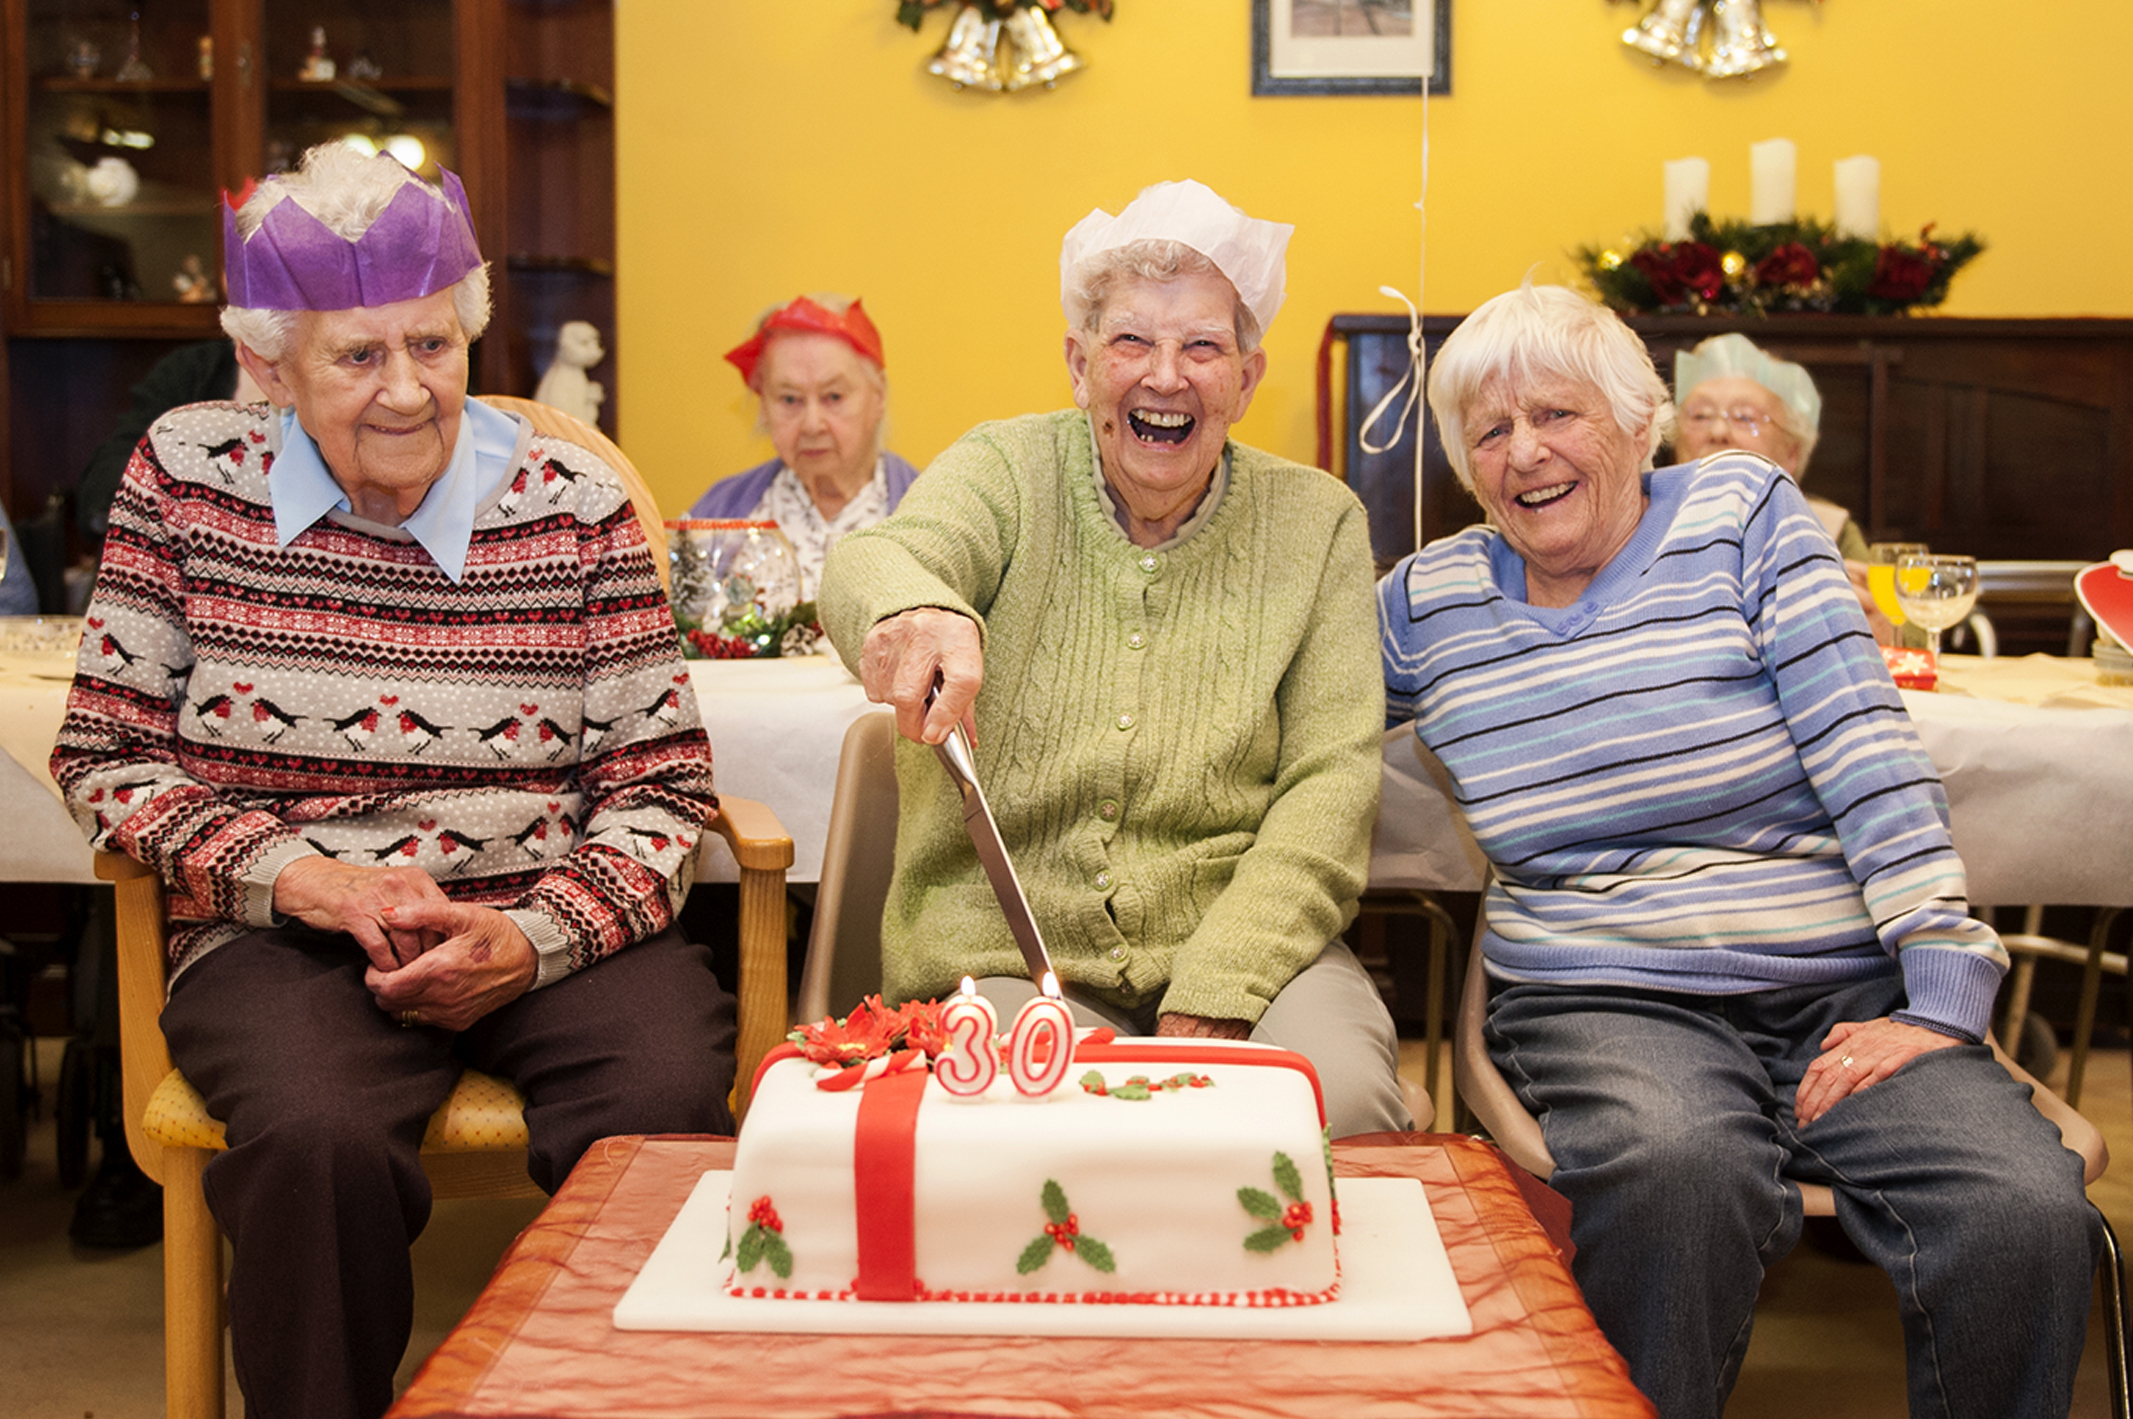 Picture shows, l to r, Ida Anderson, Jean Hardie and Meg Reid cutting the 30th Birthday cake to mark the 30th year of Seaton Grove care home.